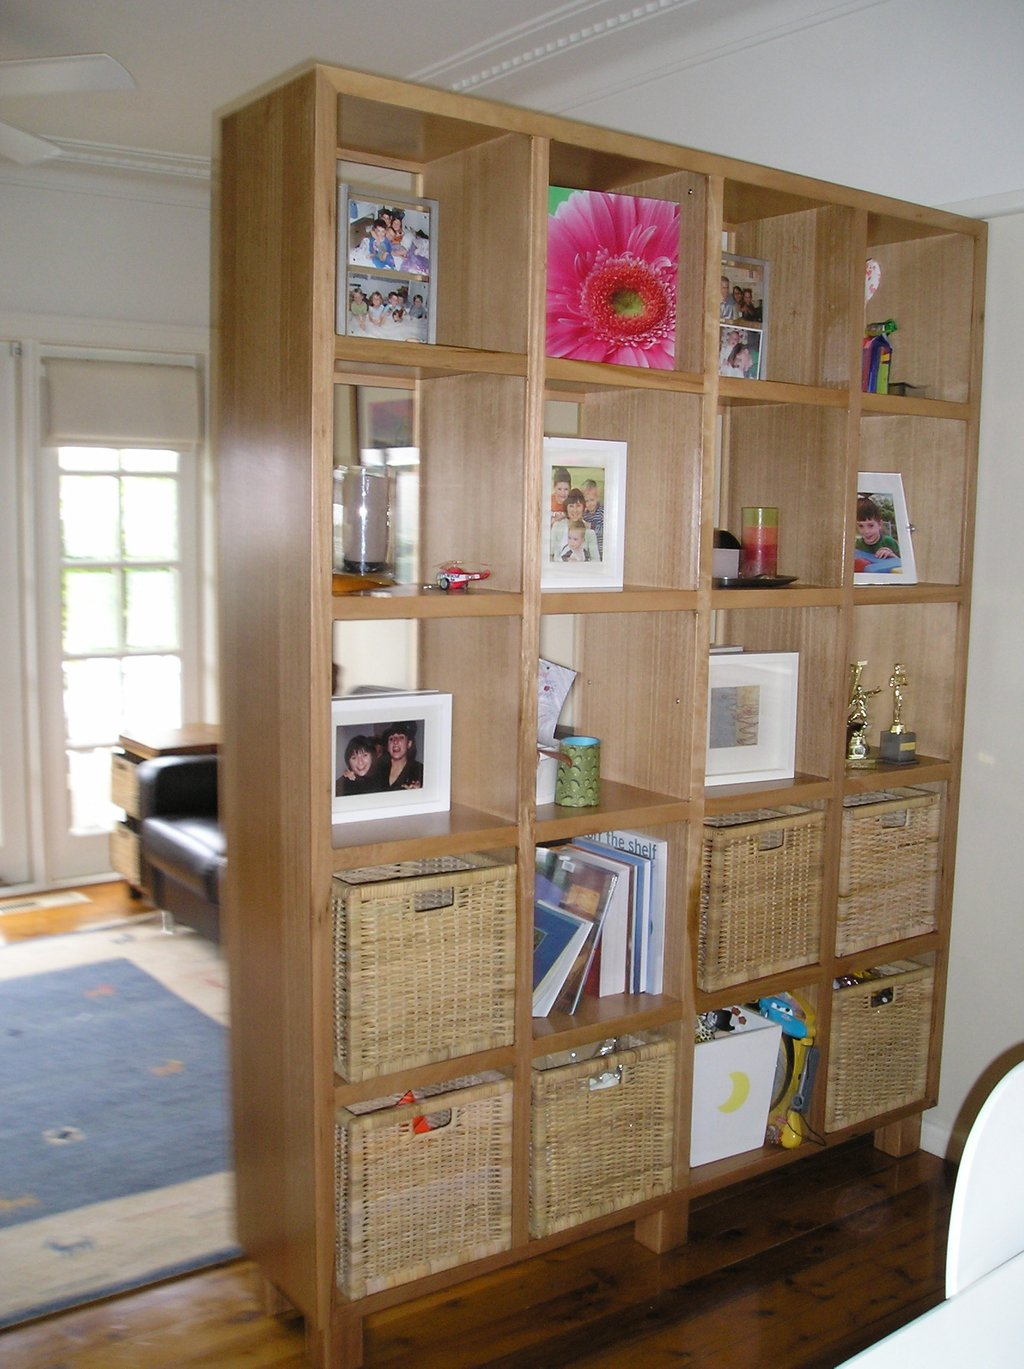 Bookcase Room Divider Idea Home Decor Folding Room Dividers Are Best Ideas